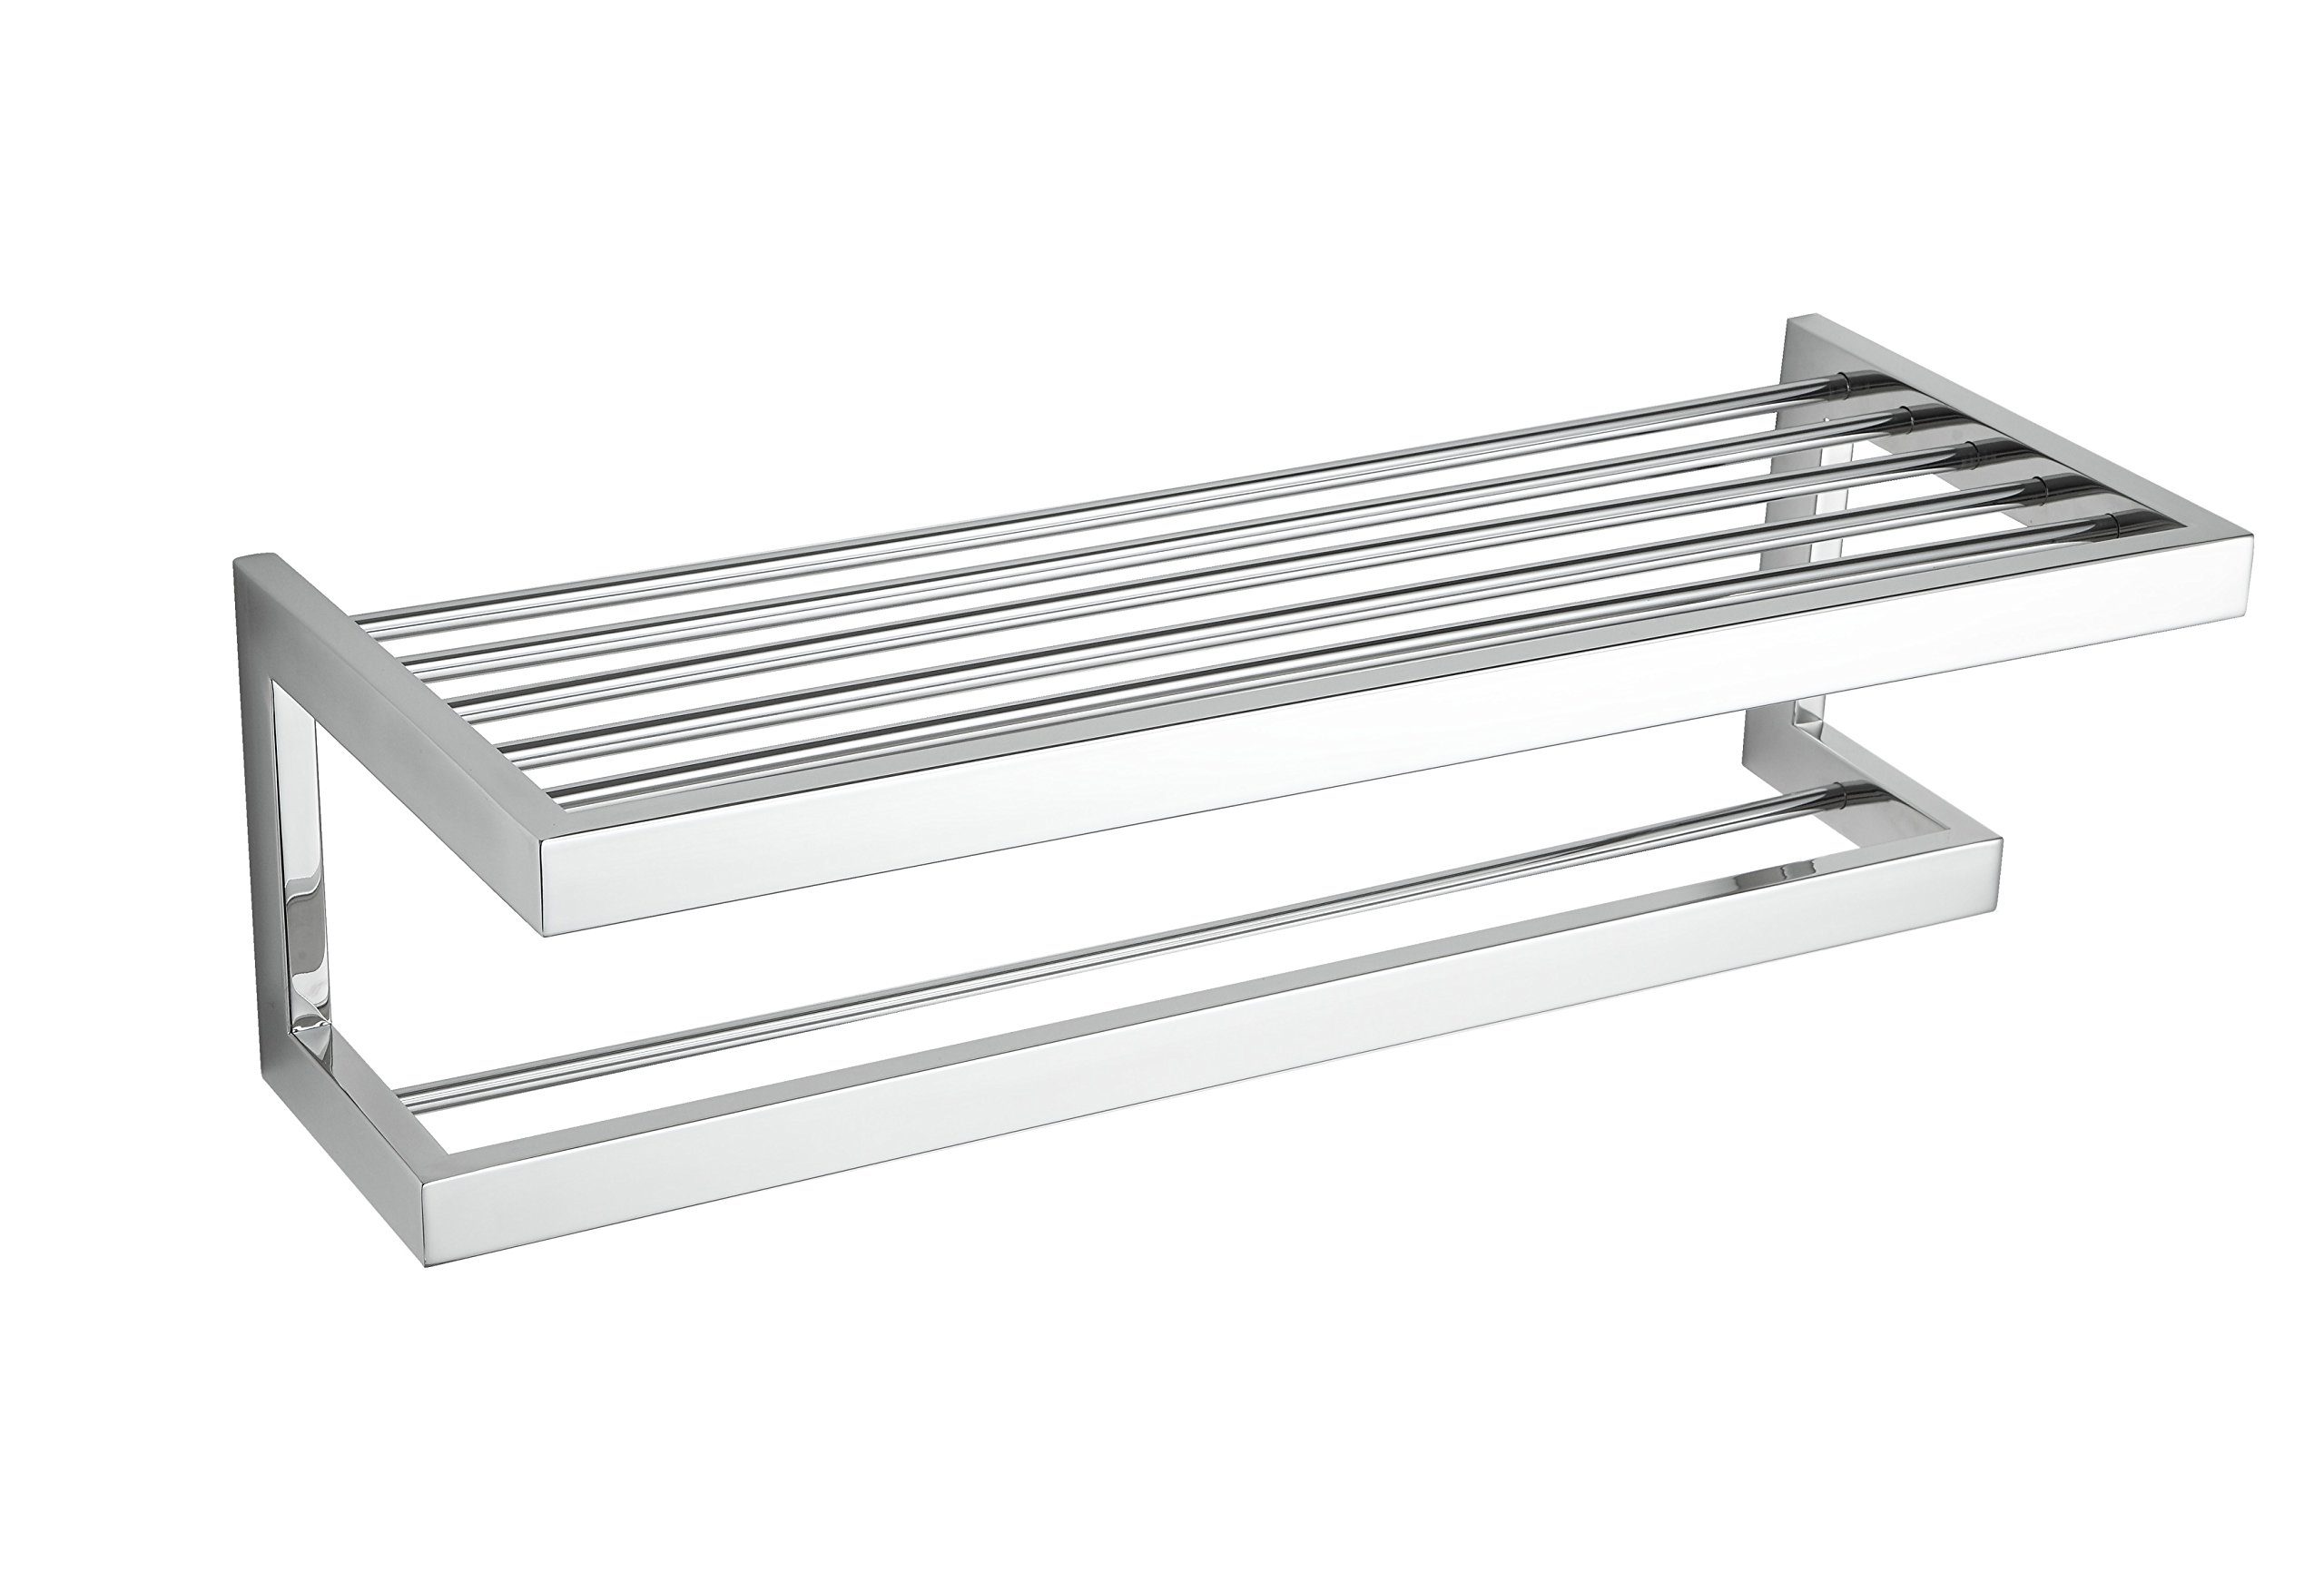 Cortesi Home CH-BR798110 Rikke Contemporary Stainless Steel Towel Bar with Shelf, Chrome